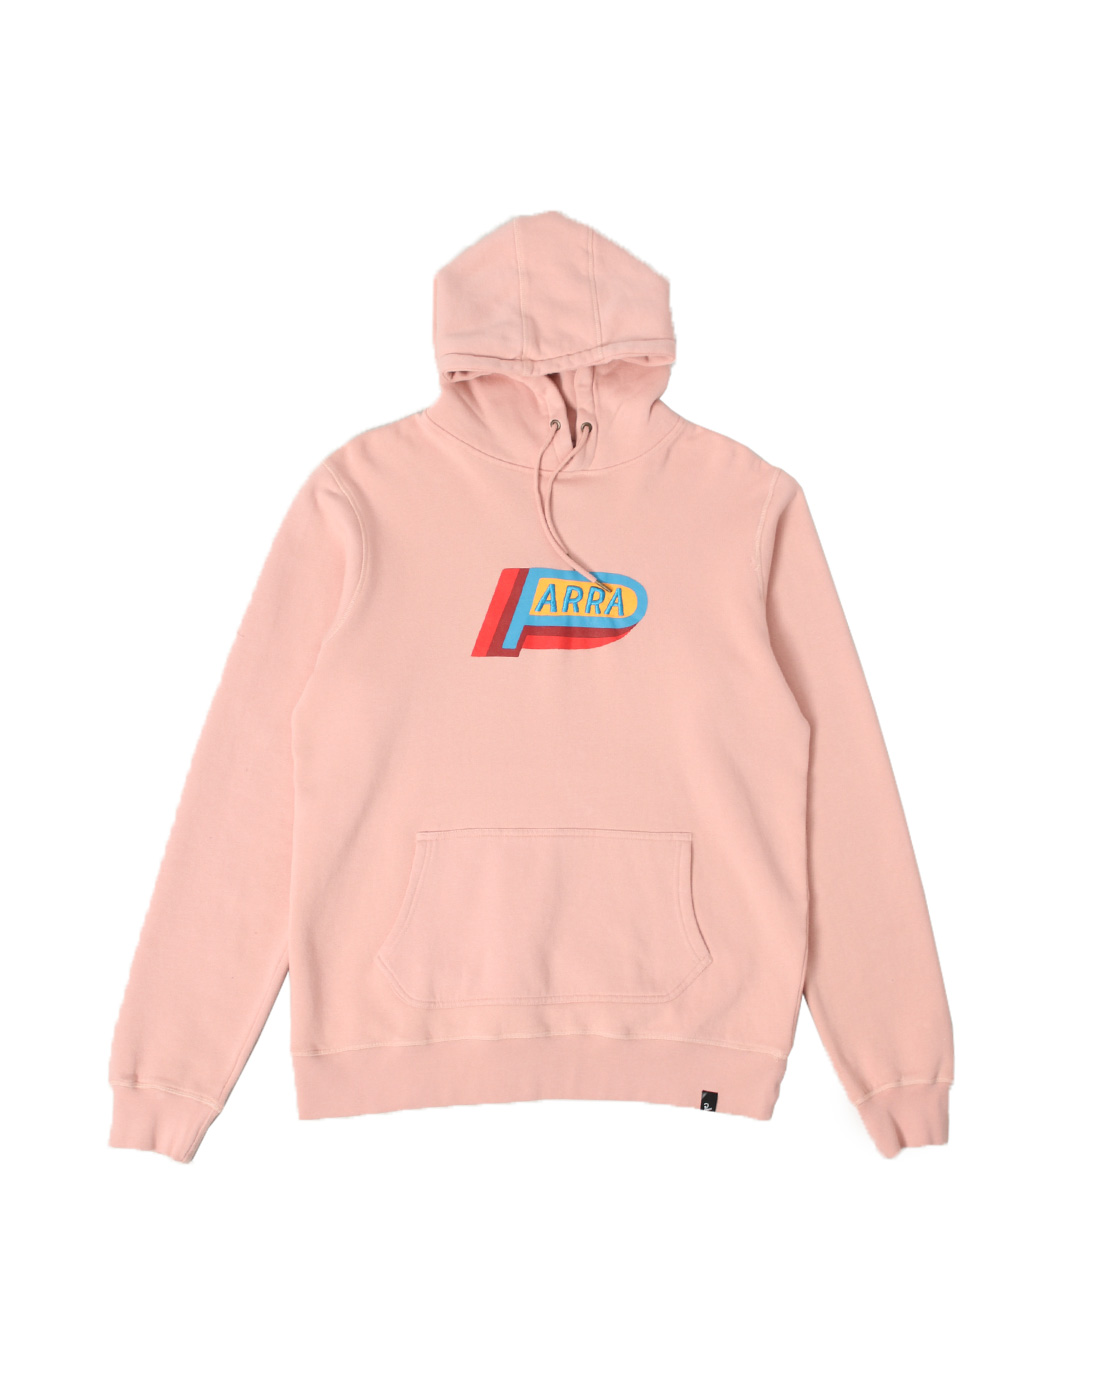 By Parra Hooded Sweater Garage Oil Pink 42290